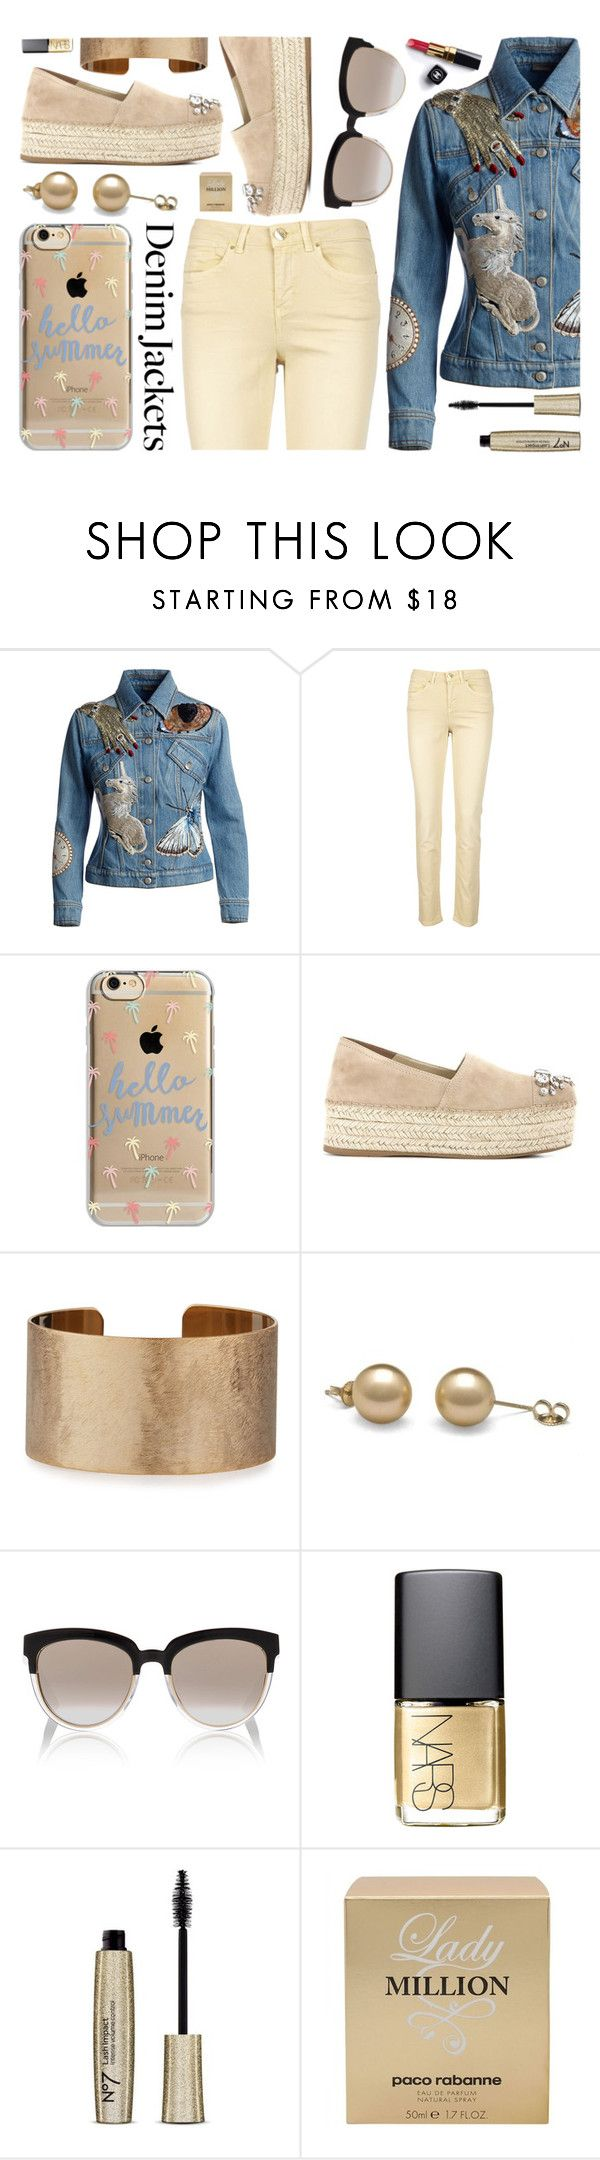 """""""style denim jackets"""" by sandevapetq ❤ liked on Polyvore featuring Alexander McQueen, Sud Express, Agent 18, Miu Miu, Panacea, Christian Dior, Chanel, NARS Cosmetics and Paco Rabanne"""